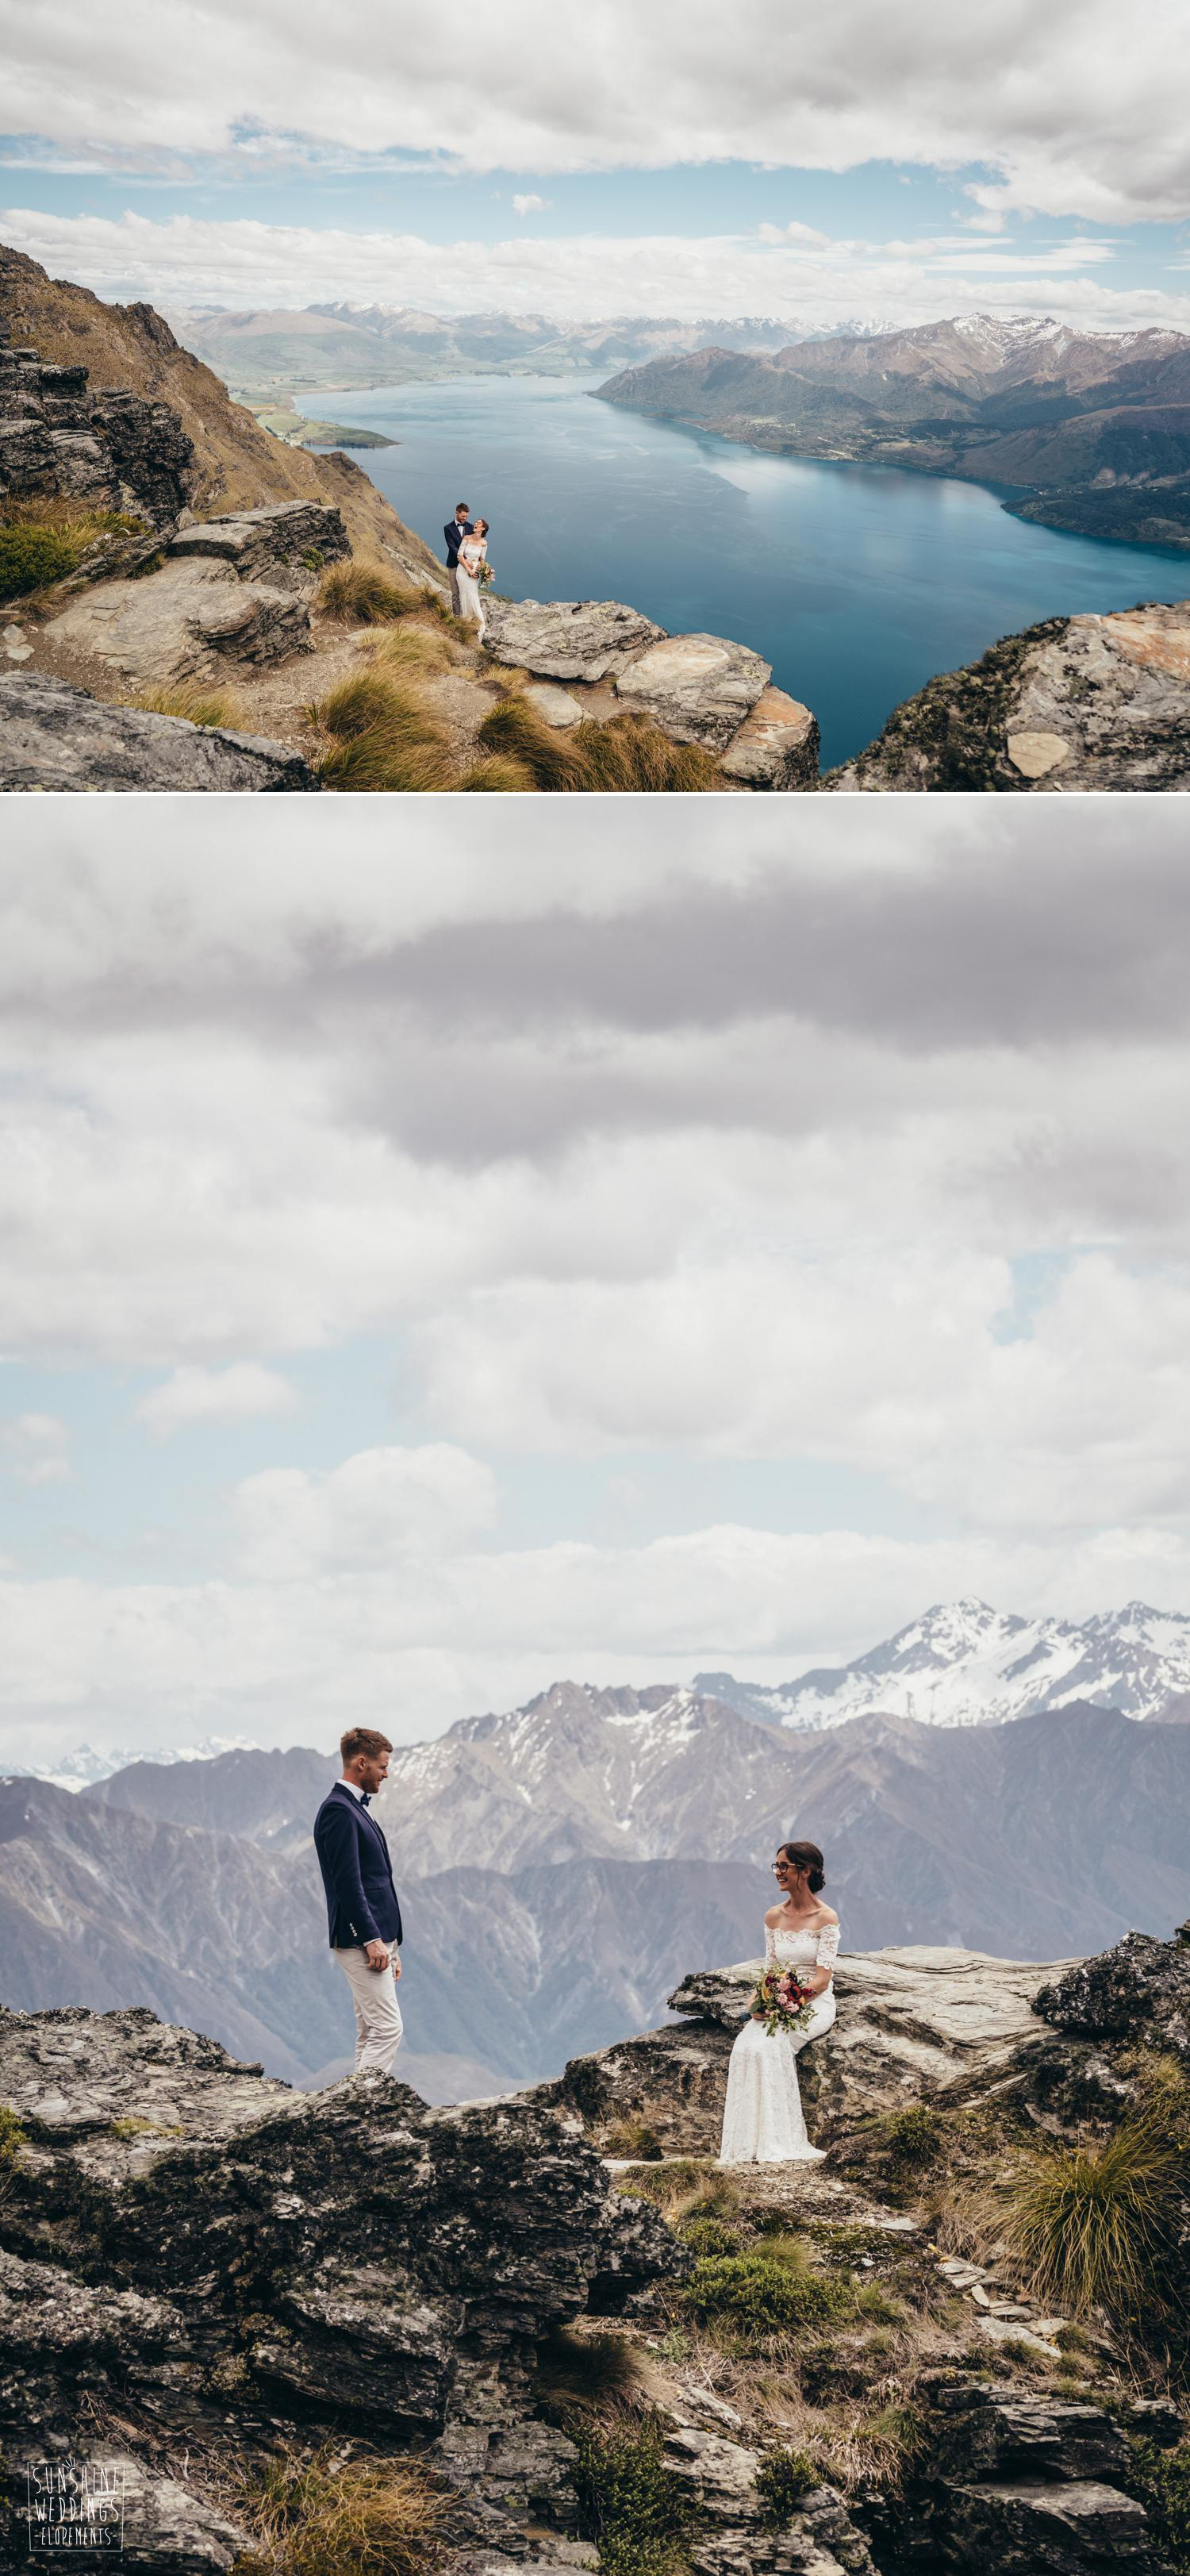 Lake Wakatipu view and wedding couple